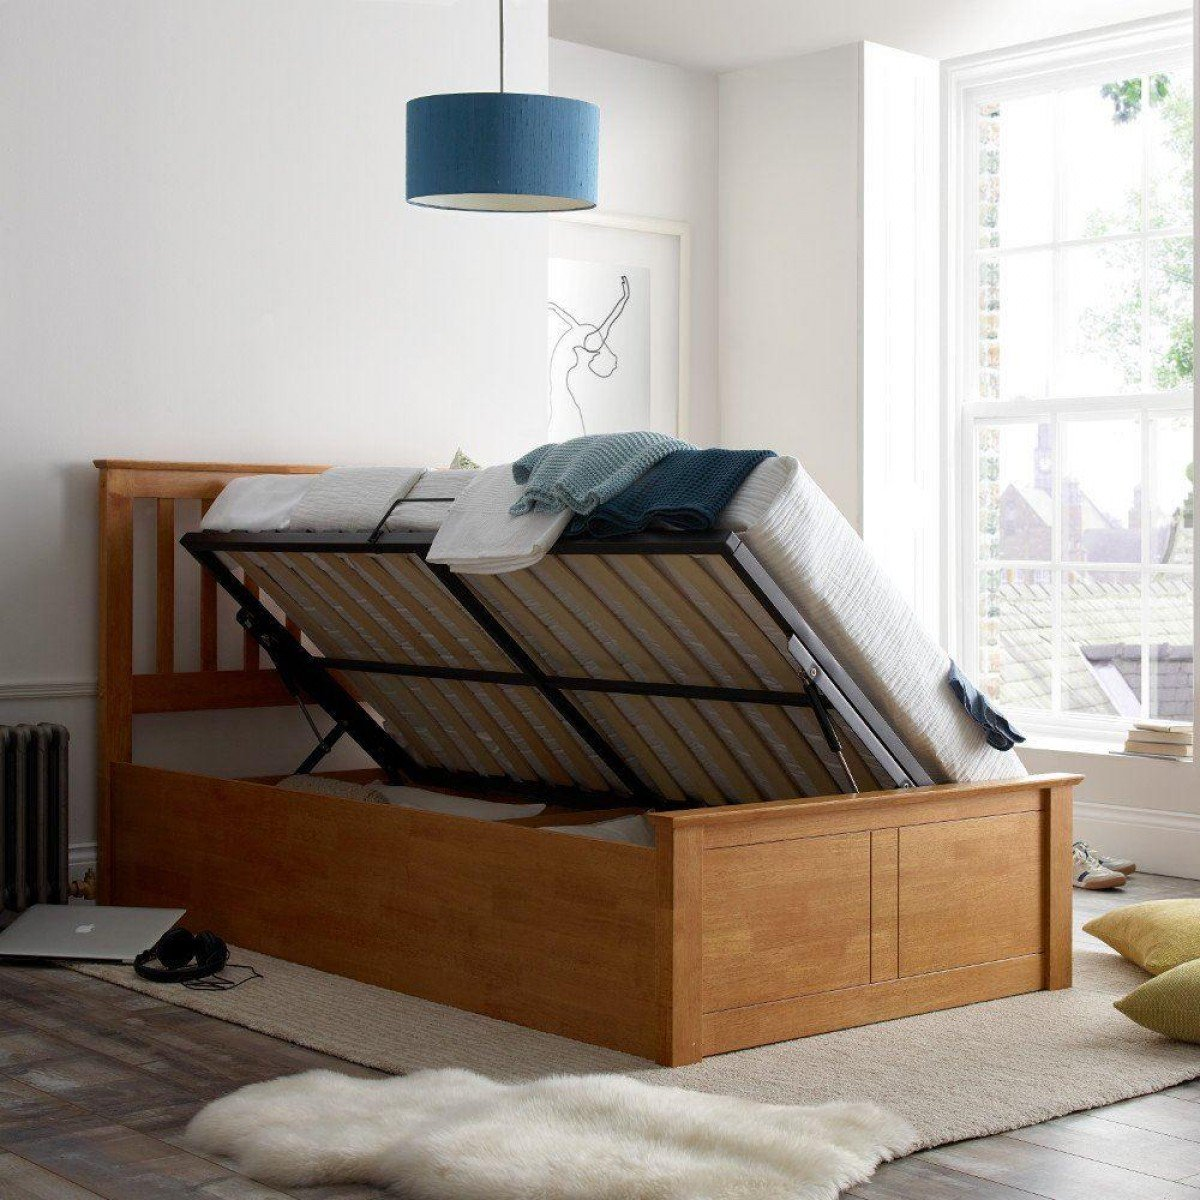 Francis Oak Wooden Ottoman Storage Bed